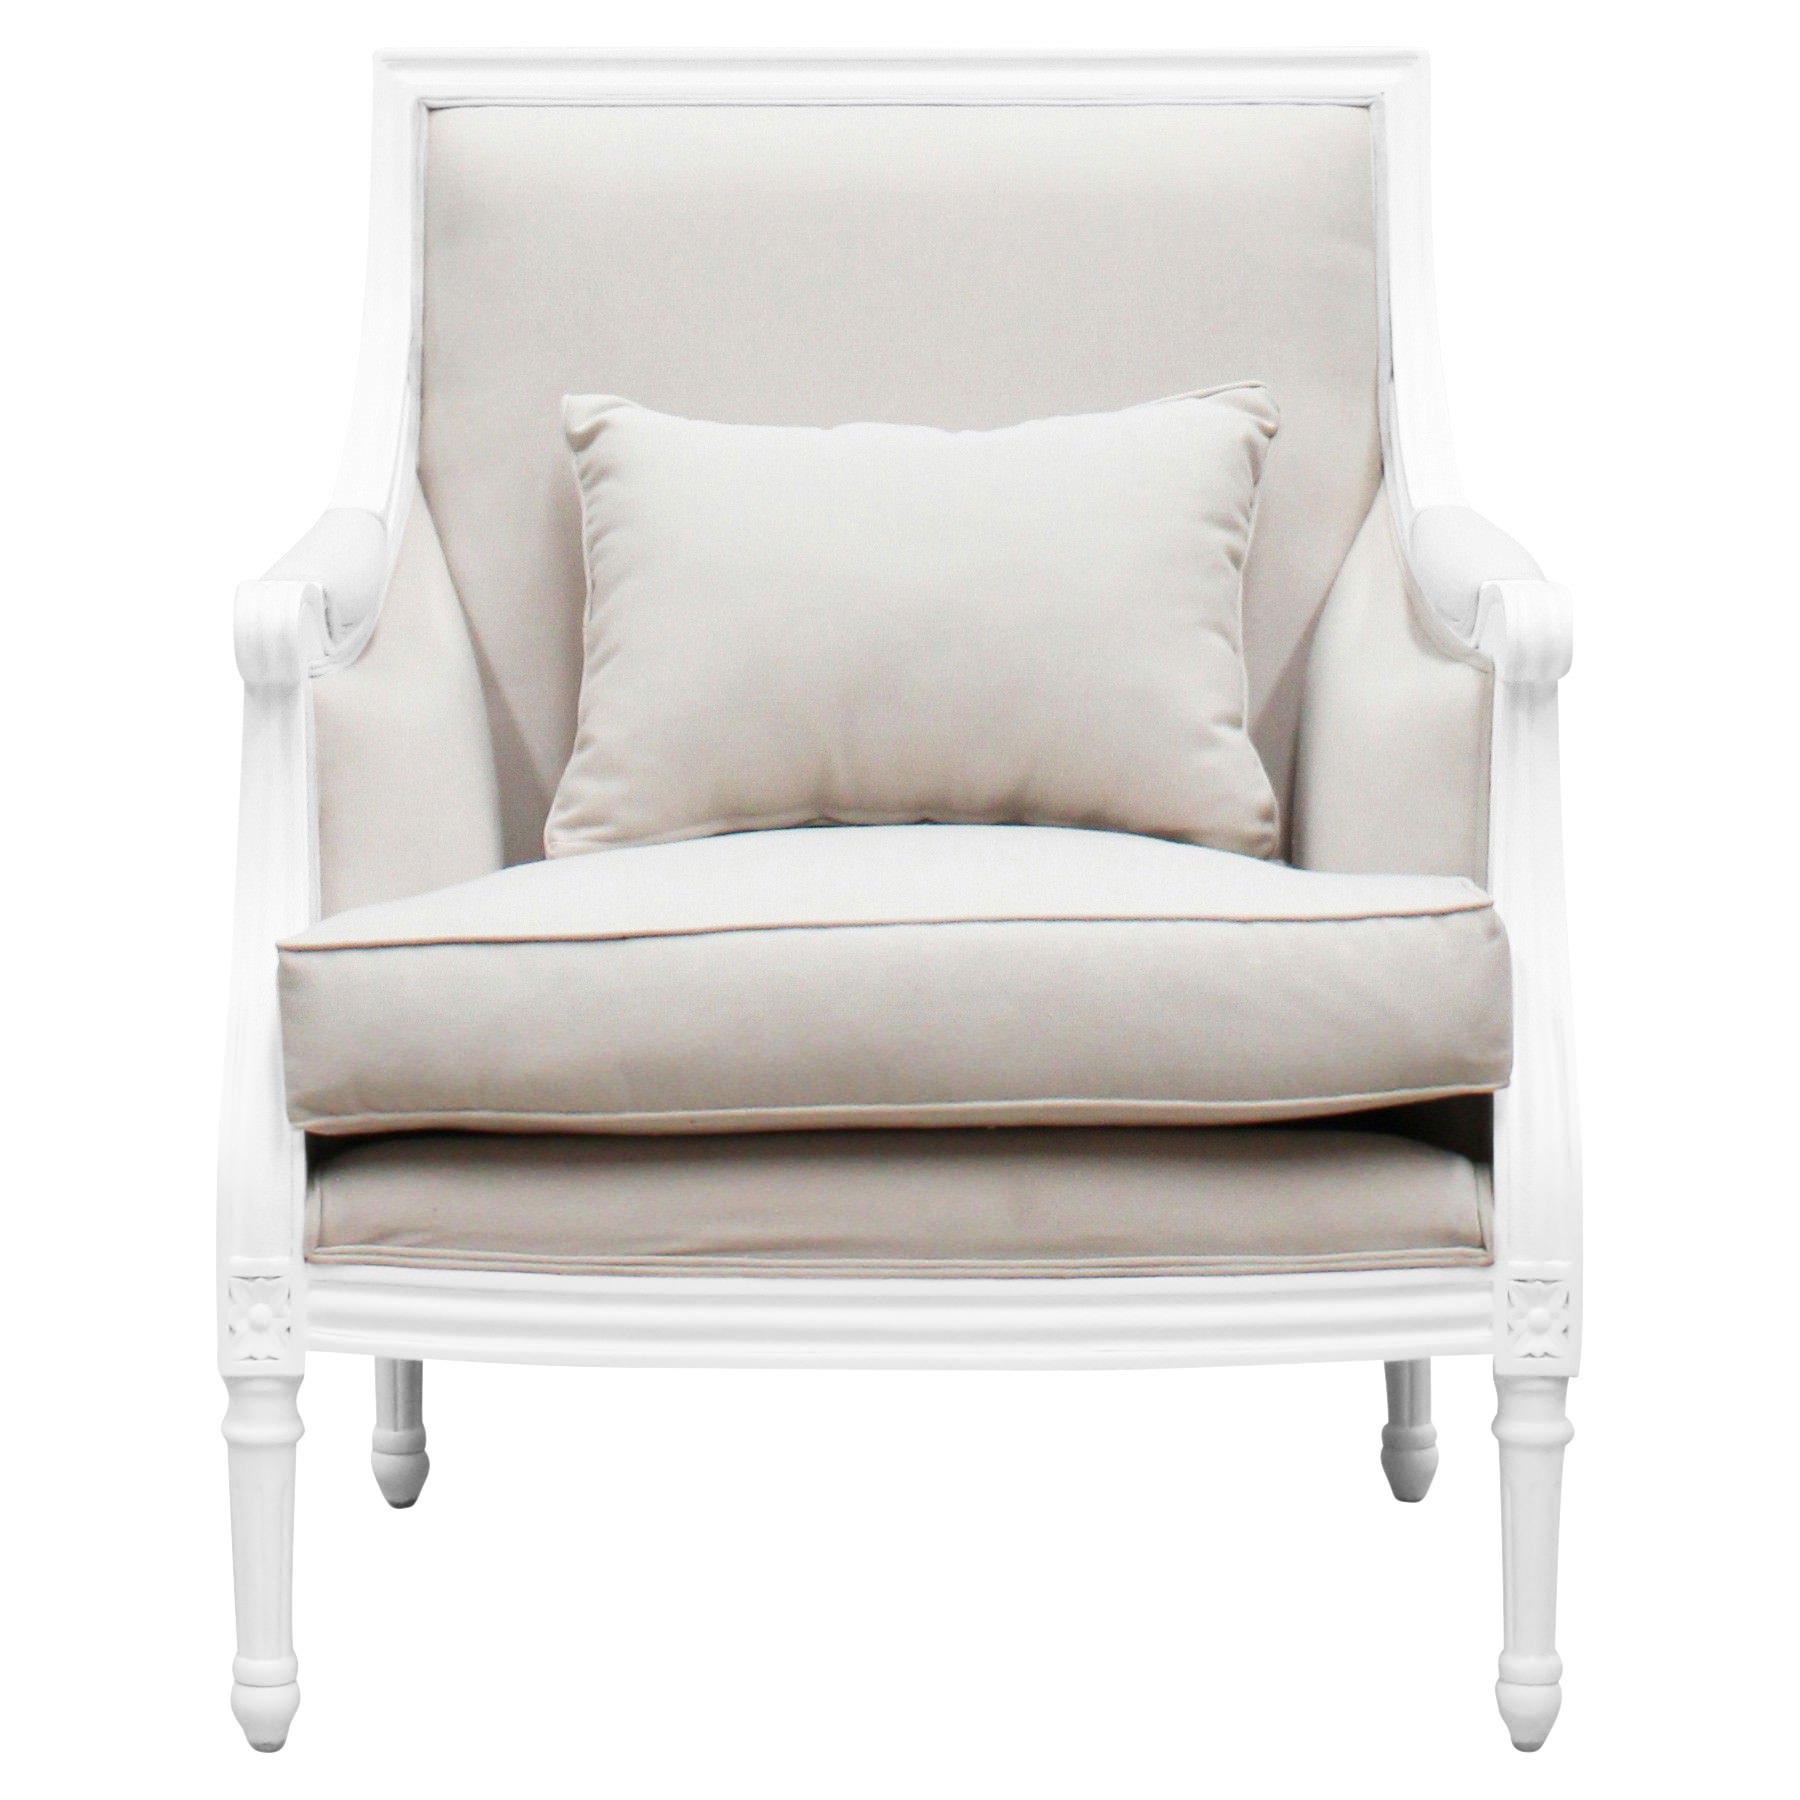 Lapalisse Handcrafted Fabric & Mindi Wood Armchair, White